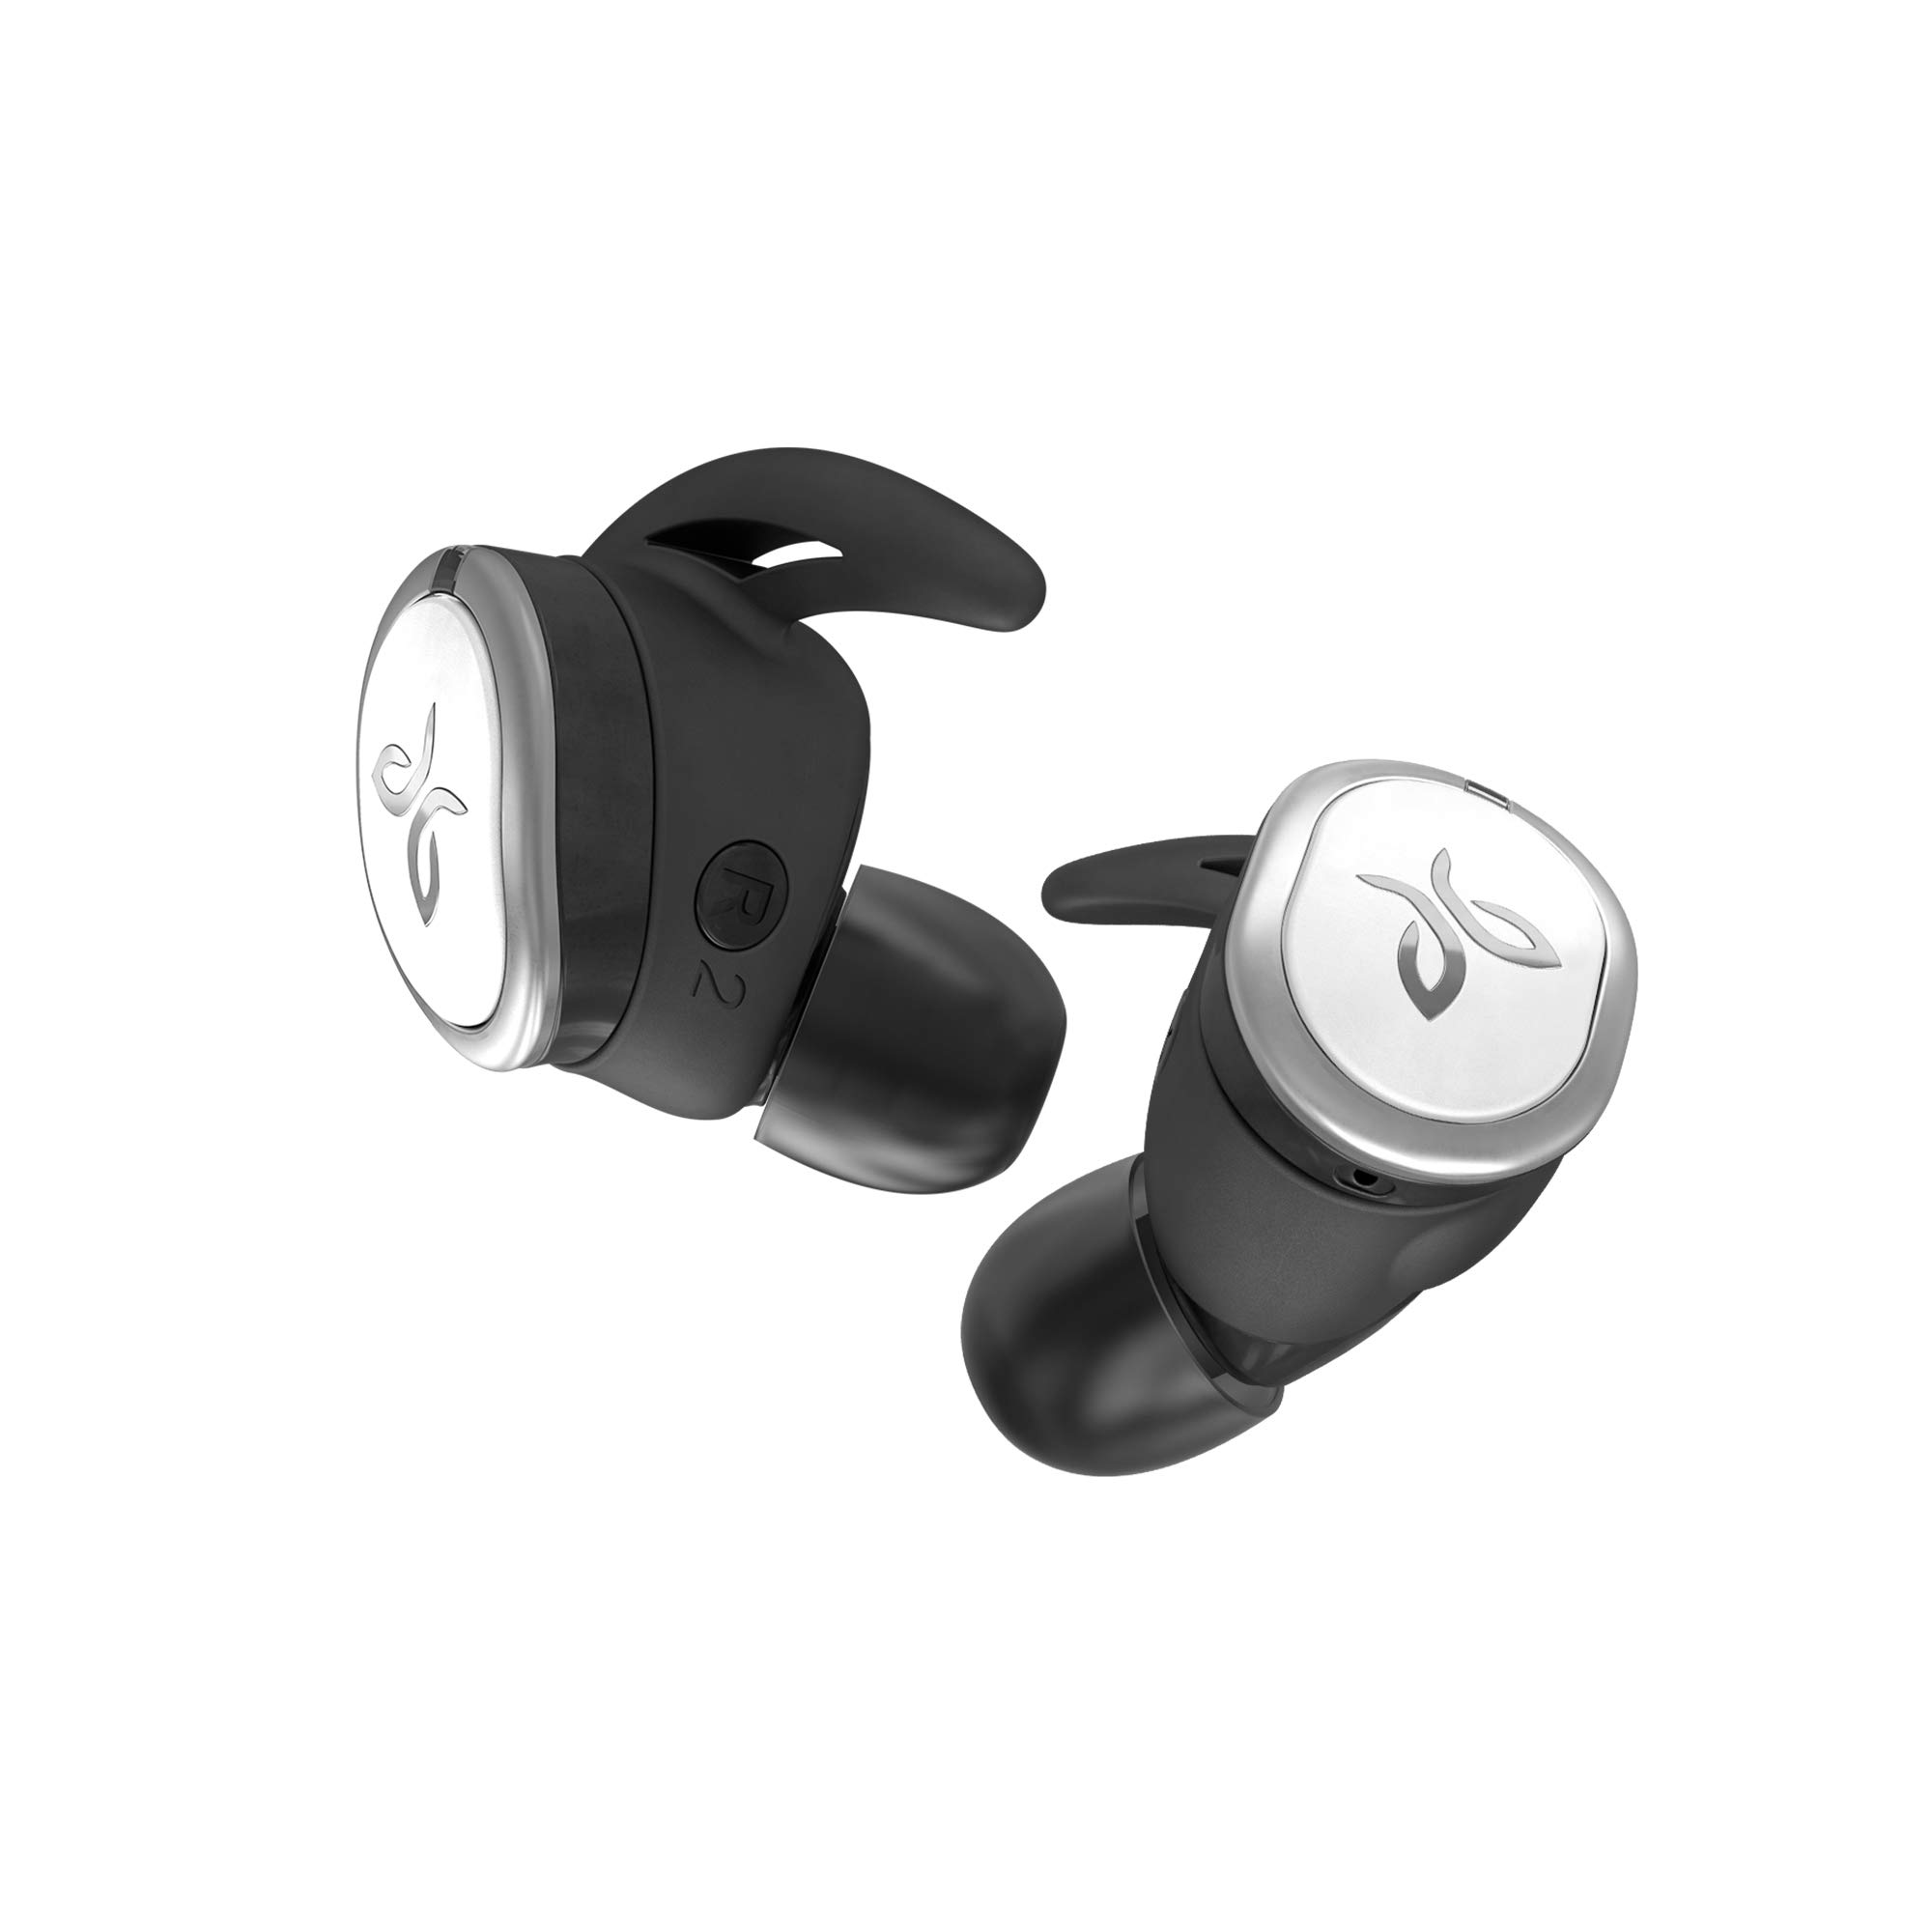 ce9c01f4e66 Jaybird RUN True Wireless Headphones for Running, Secure Fit, Sweat-Proof  and Water Resistant, Custom Sound, 12 Hours In Your Pocket, Music + Calls  (Drift)